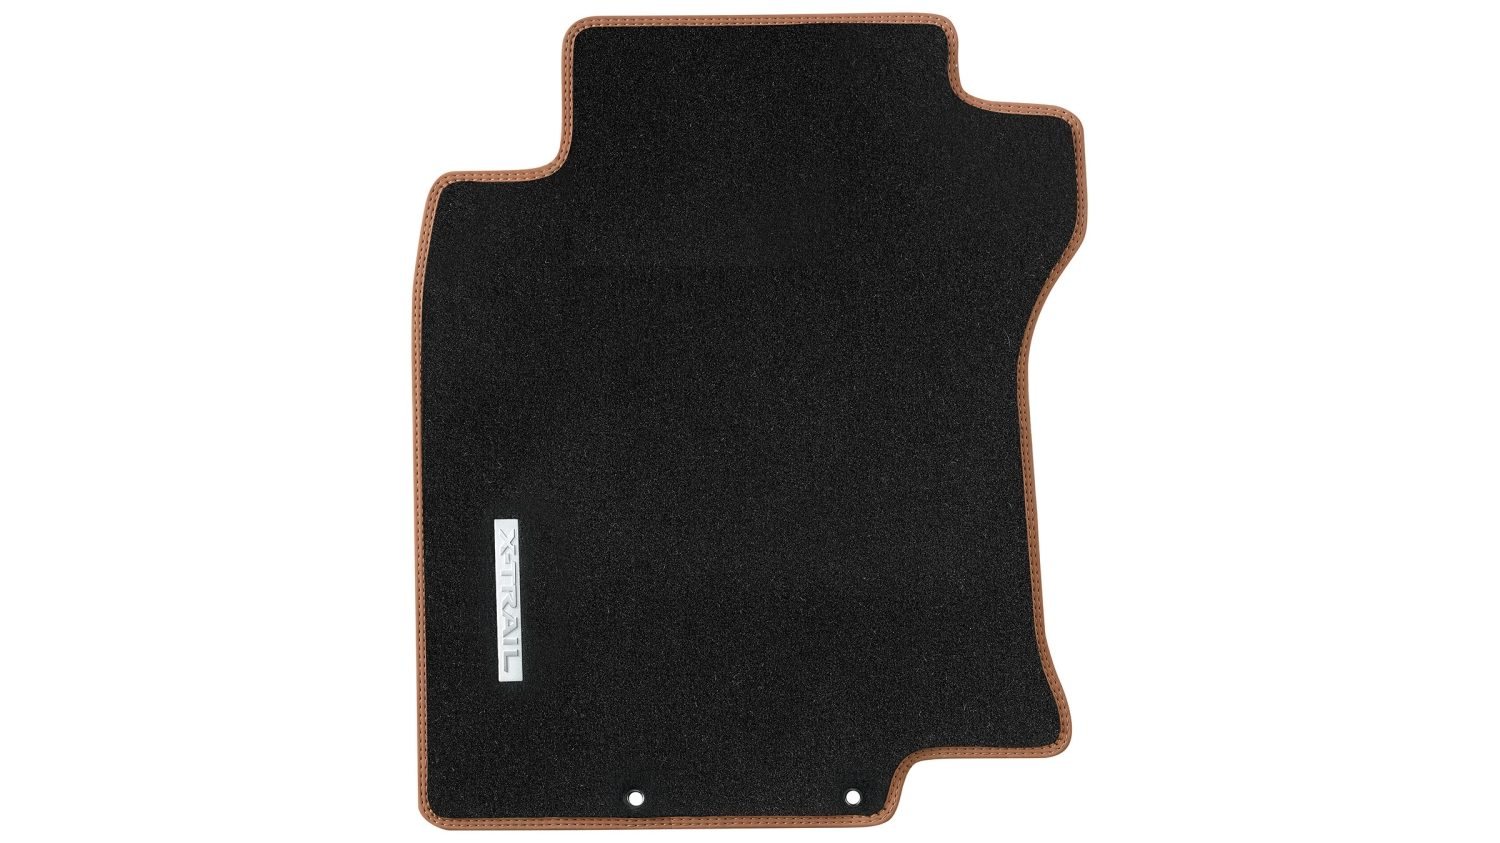 X-Trail textile luxury brown mats